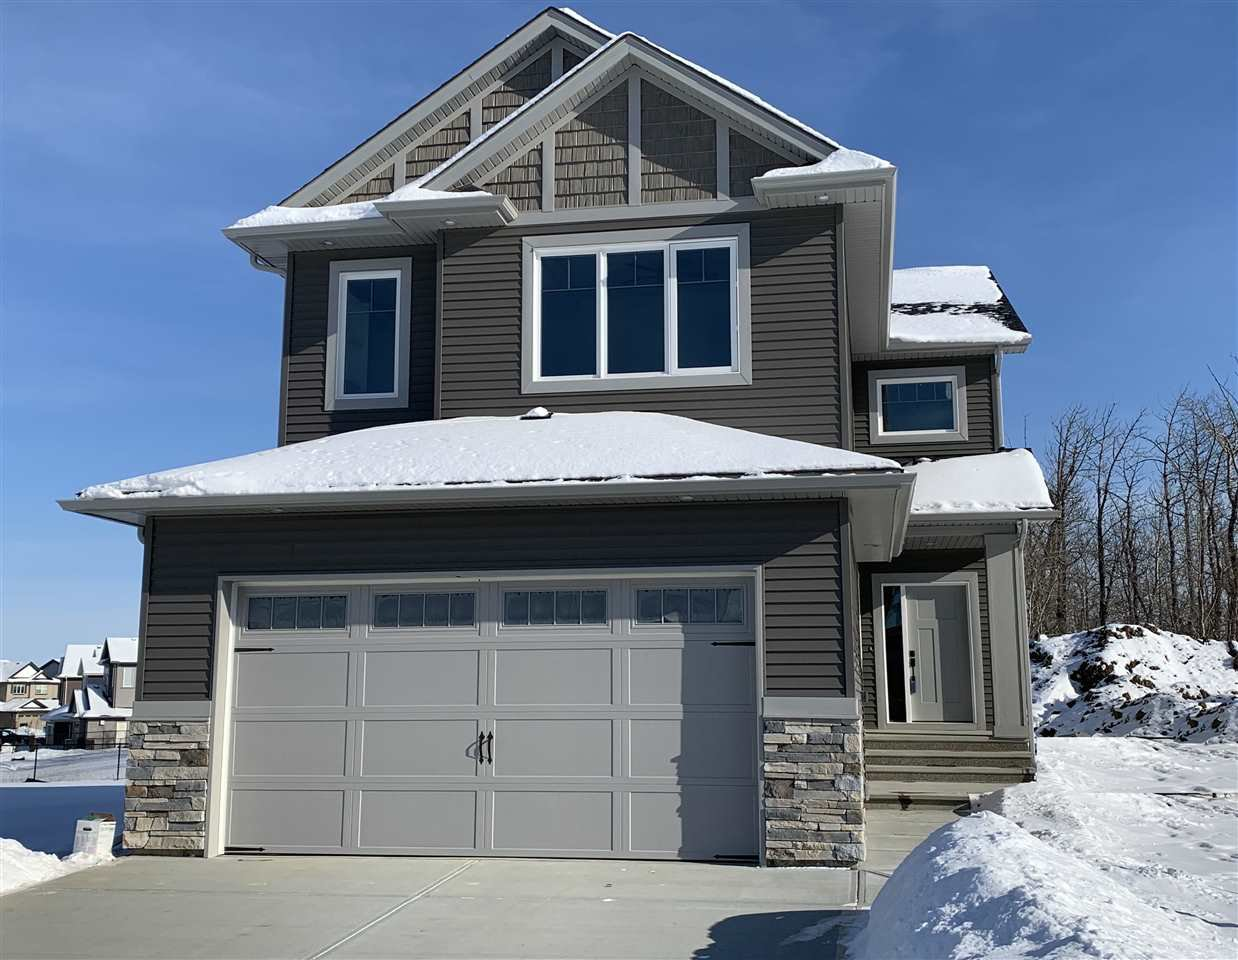 Main Photo: 205 Annandale Crescent: Sherwood Park House for sale : MLS®# E4186723